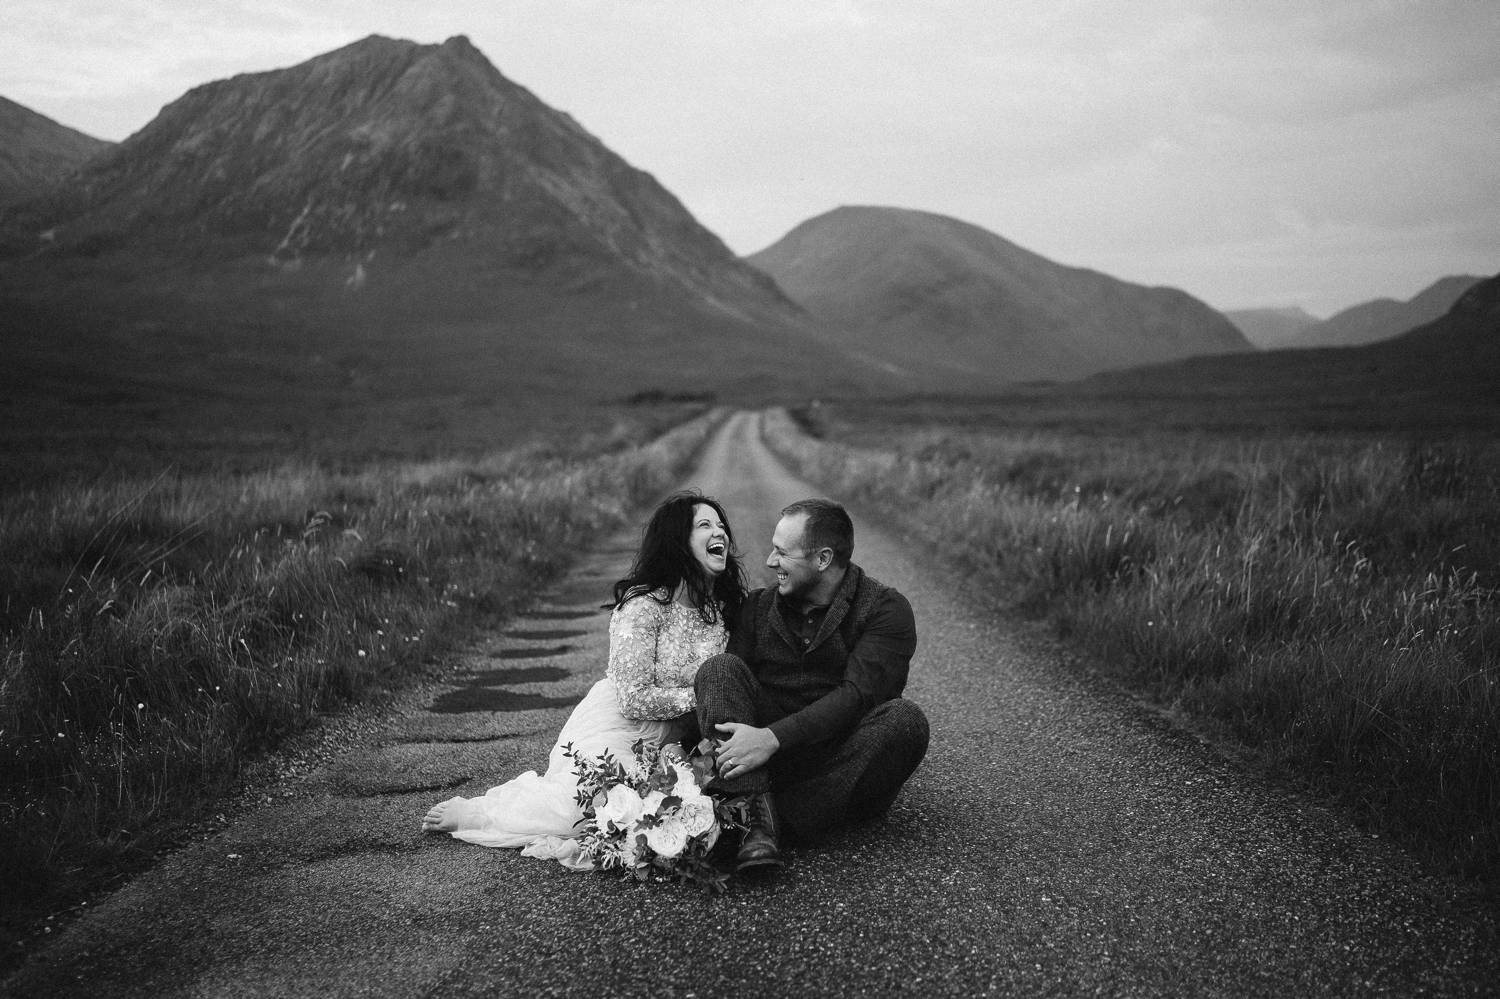 A bride and groom sit close together, laughing and embracing on an old Irish road. Black and white photograph by Rob Dight.